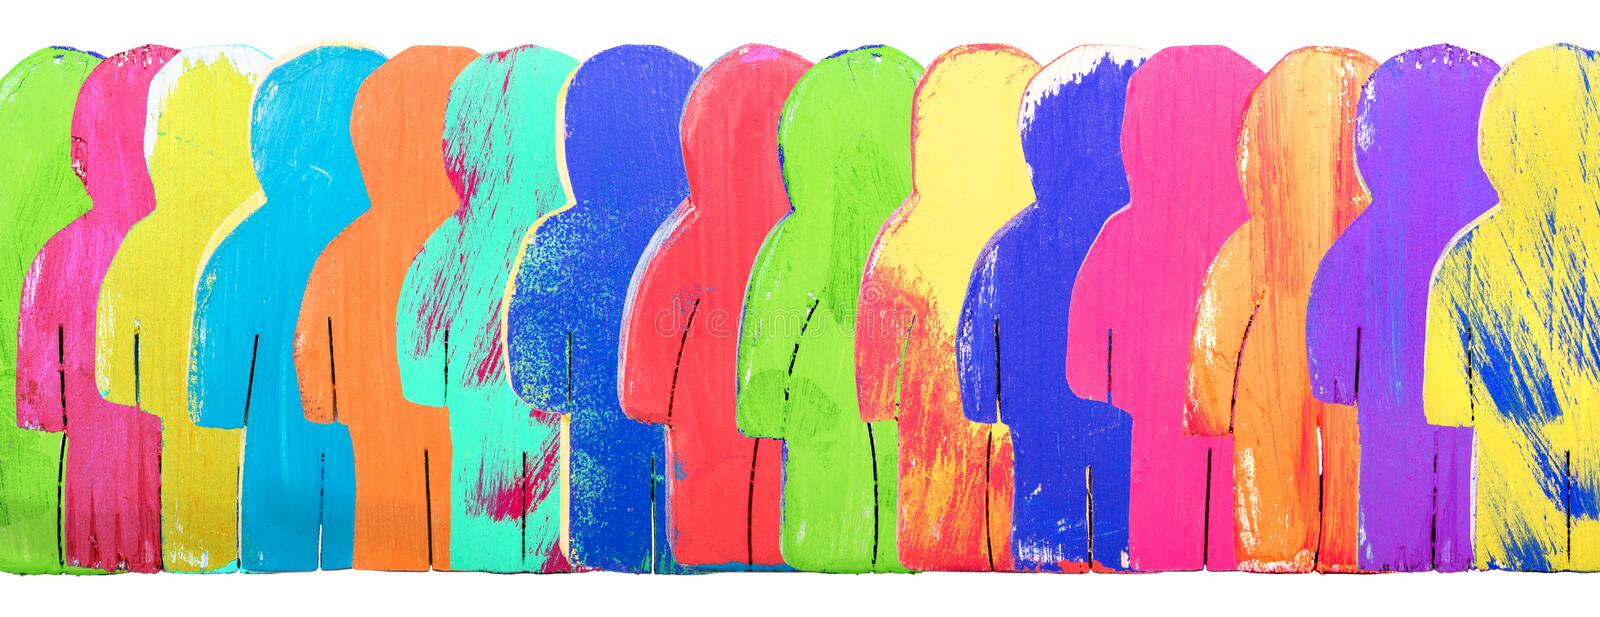 Header, colorful wooden figures in a line, concept community and royalty free stock photo